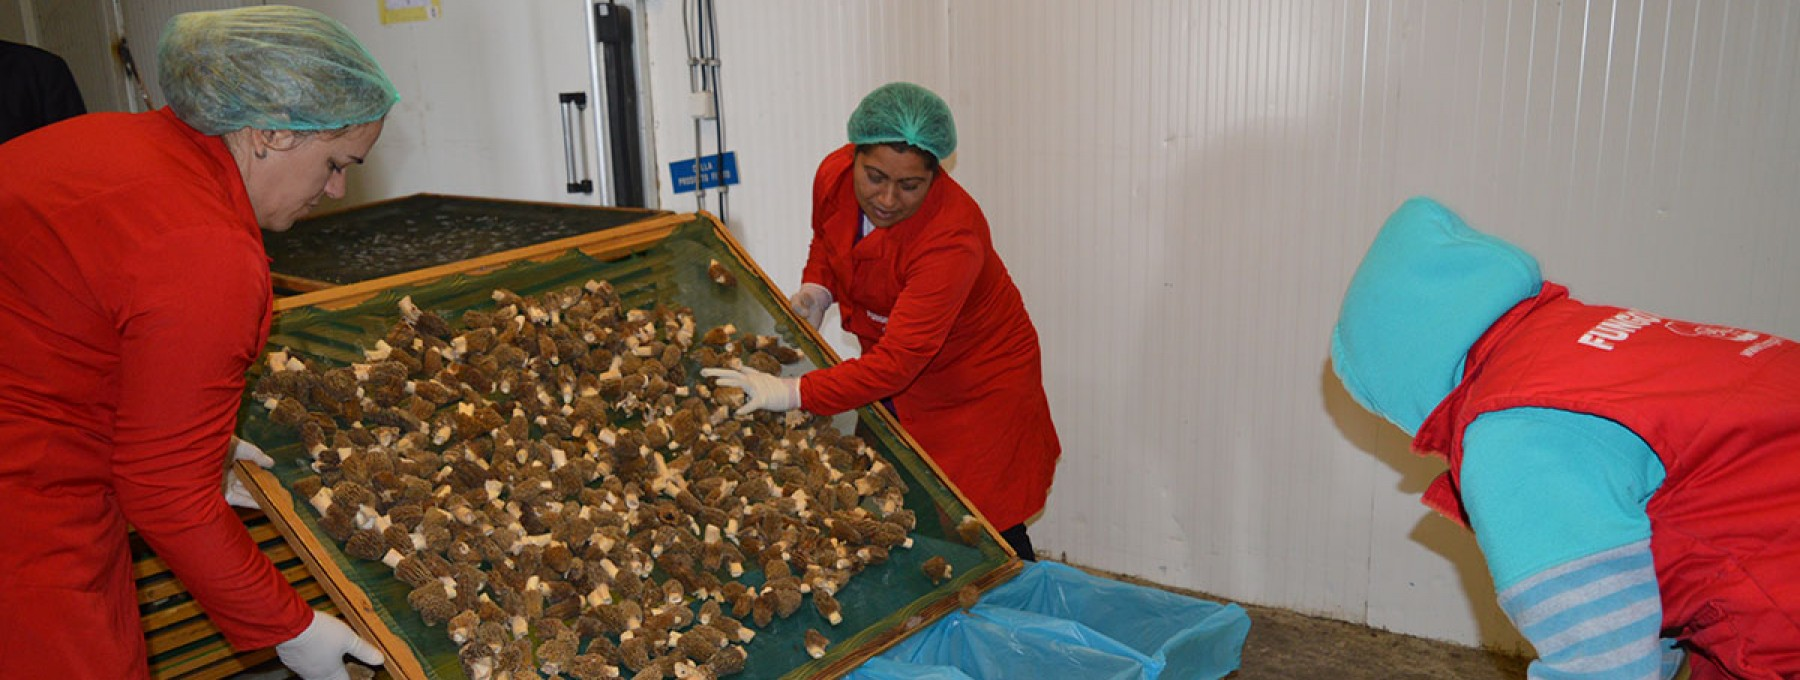 Kosovo Mushrooms Exported Worldwide